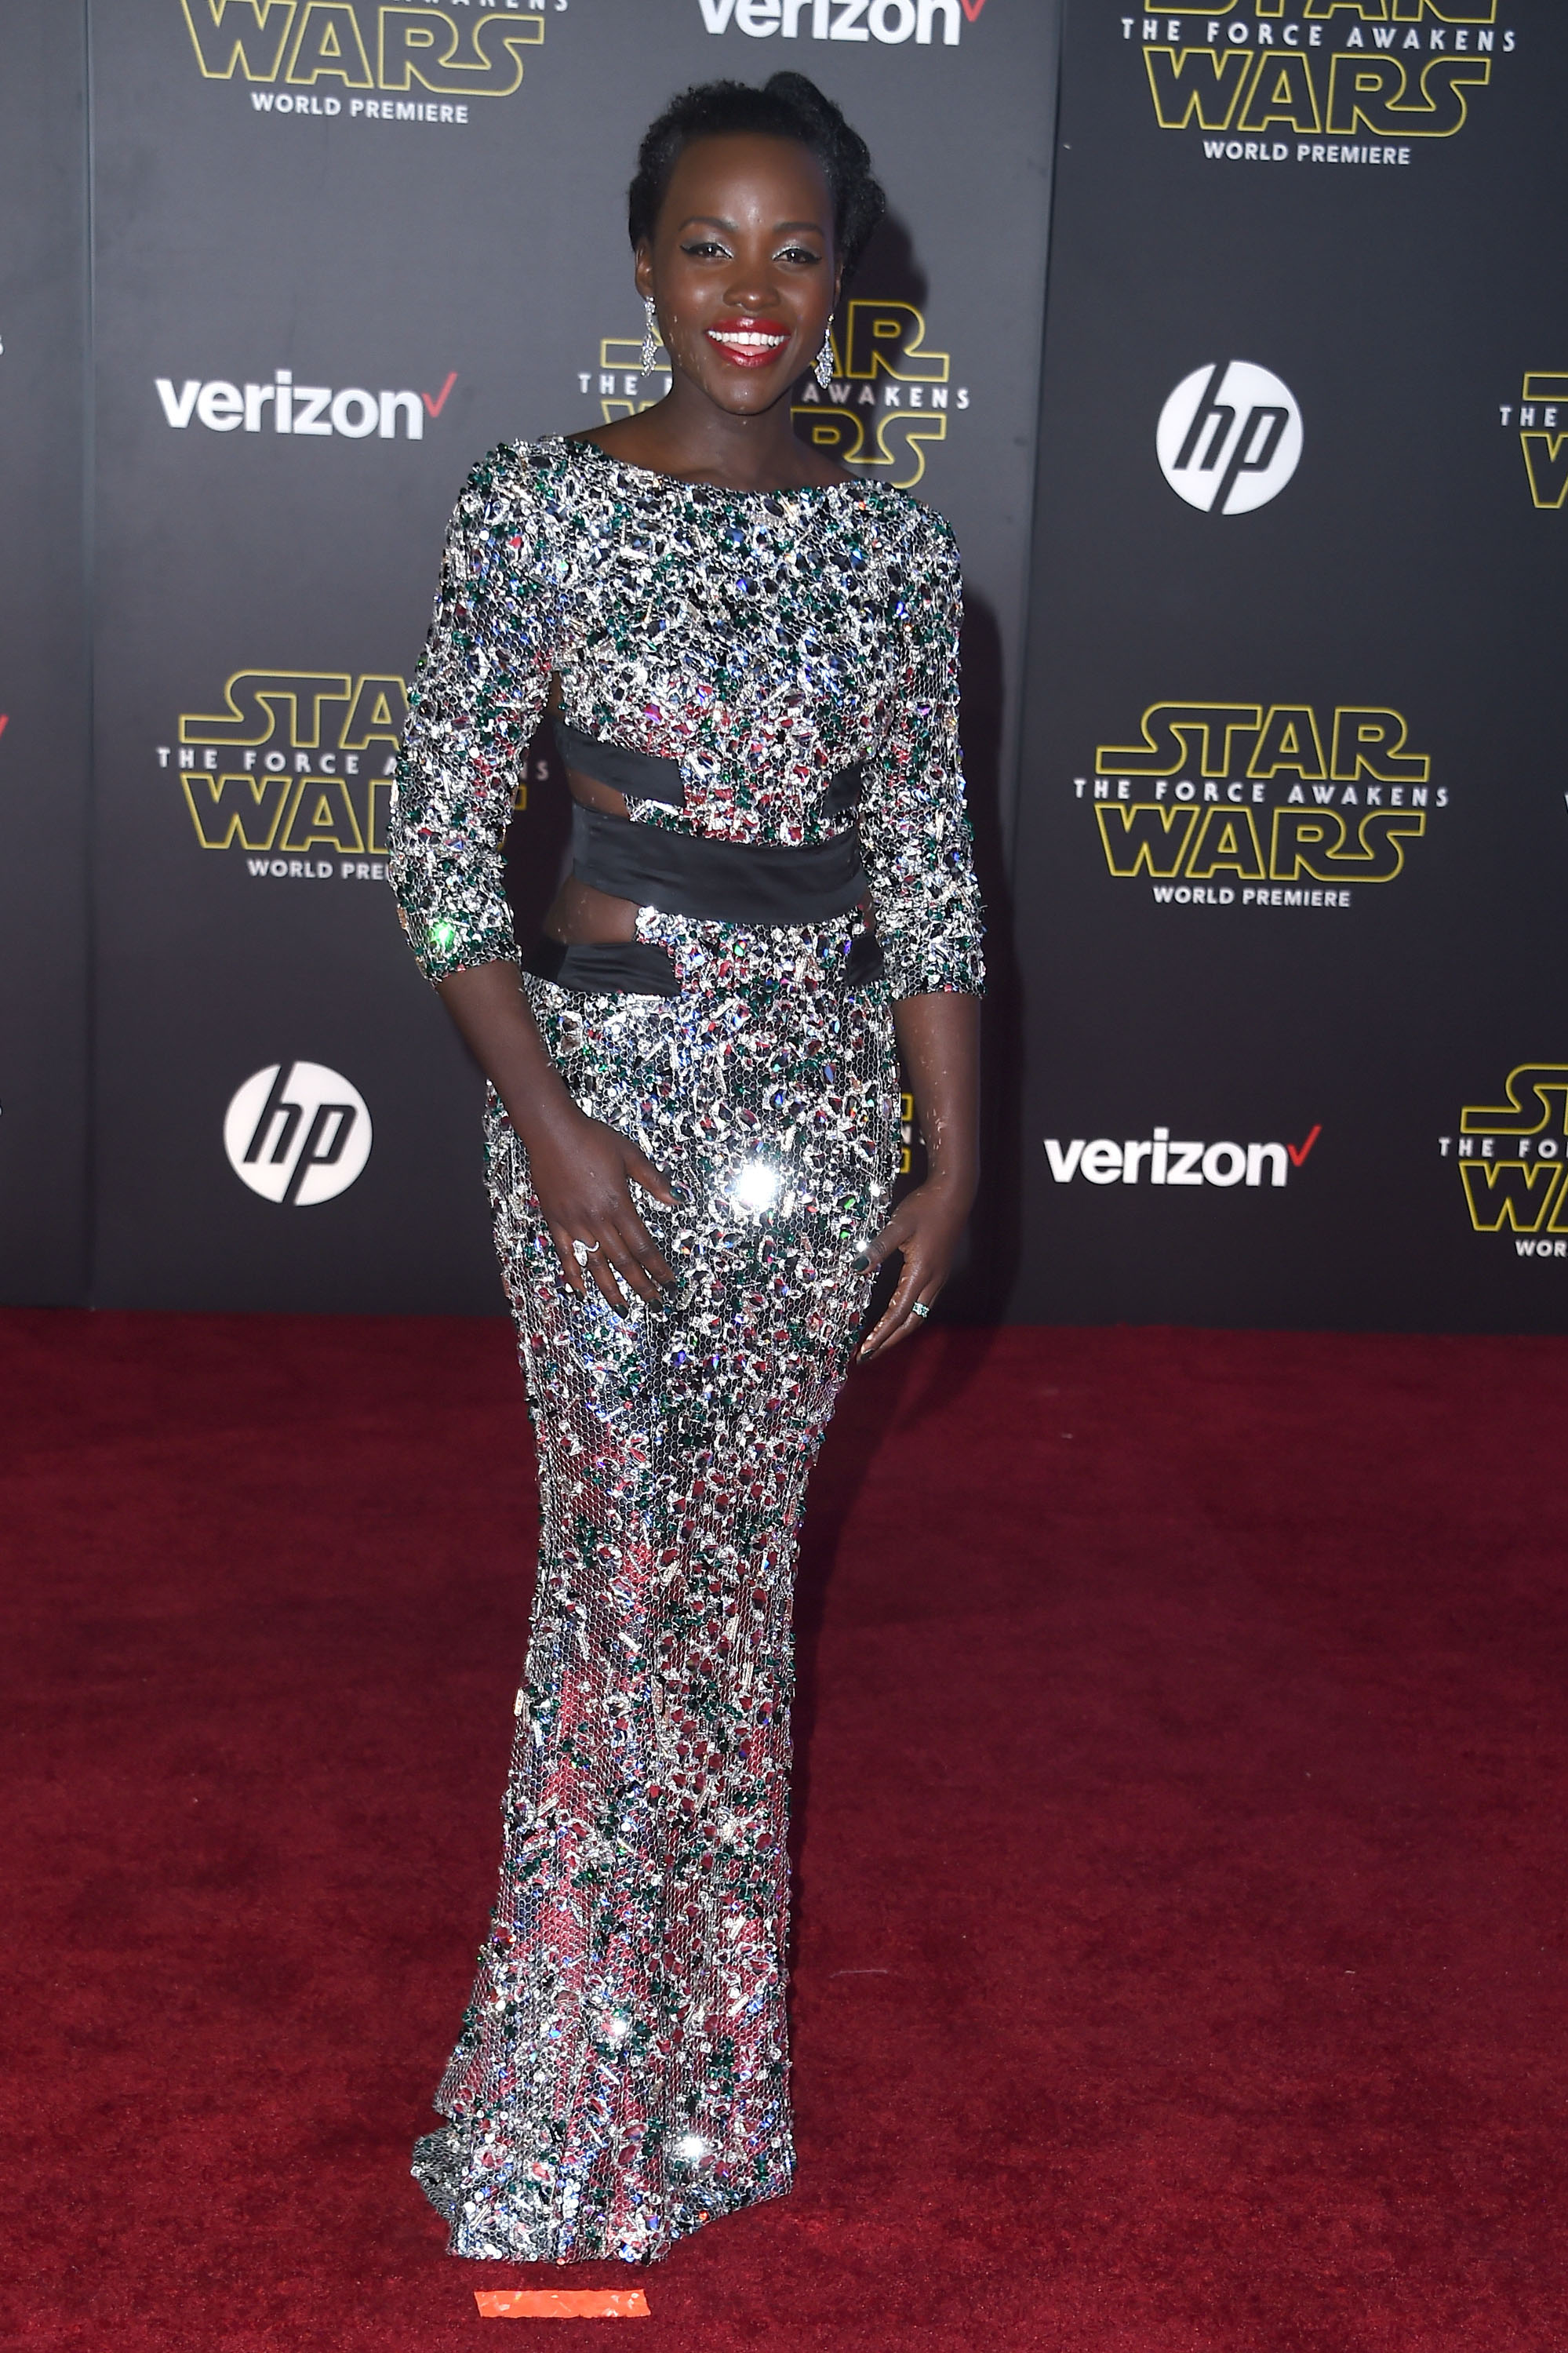 Lupita Star Wars dress - P 2015